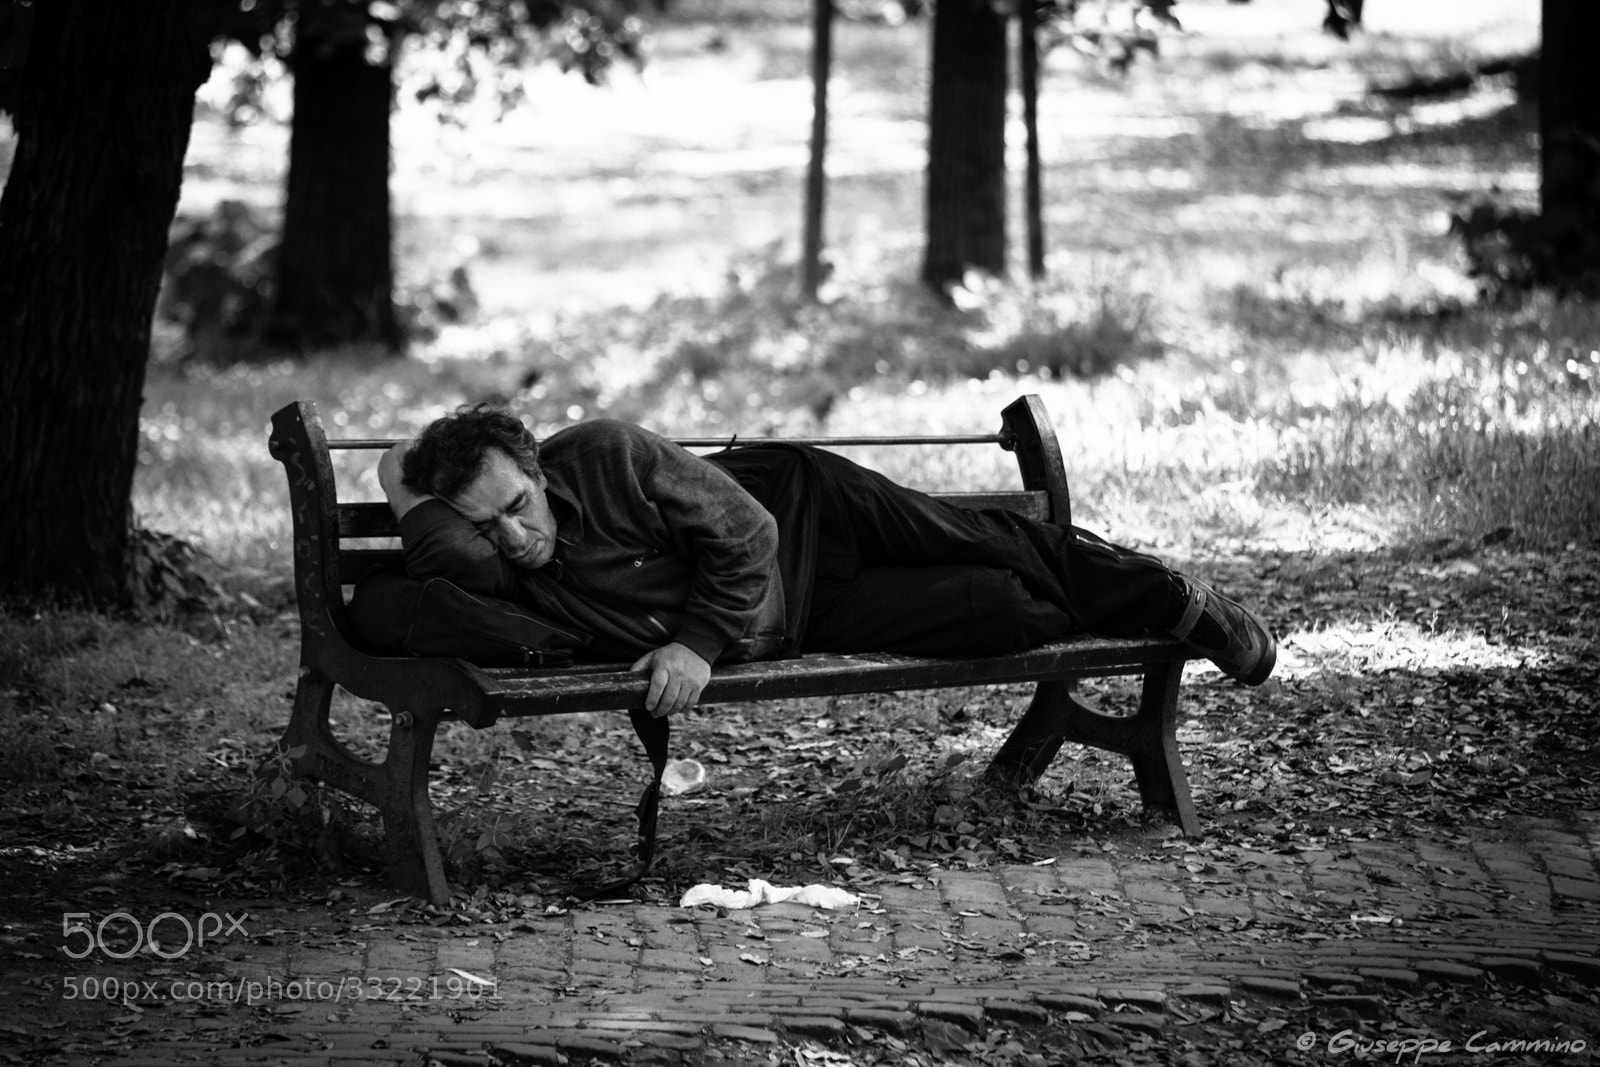 Photograph Homeless guy in Villa Borghese by Giuseppe Cammino on 500px